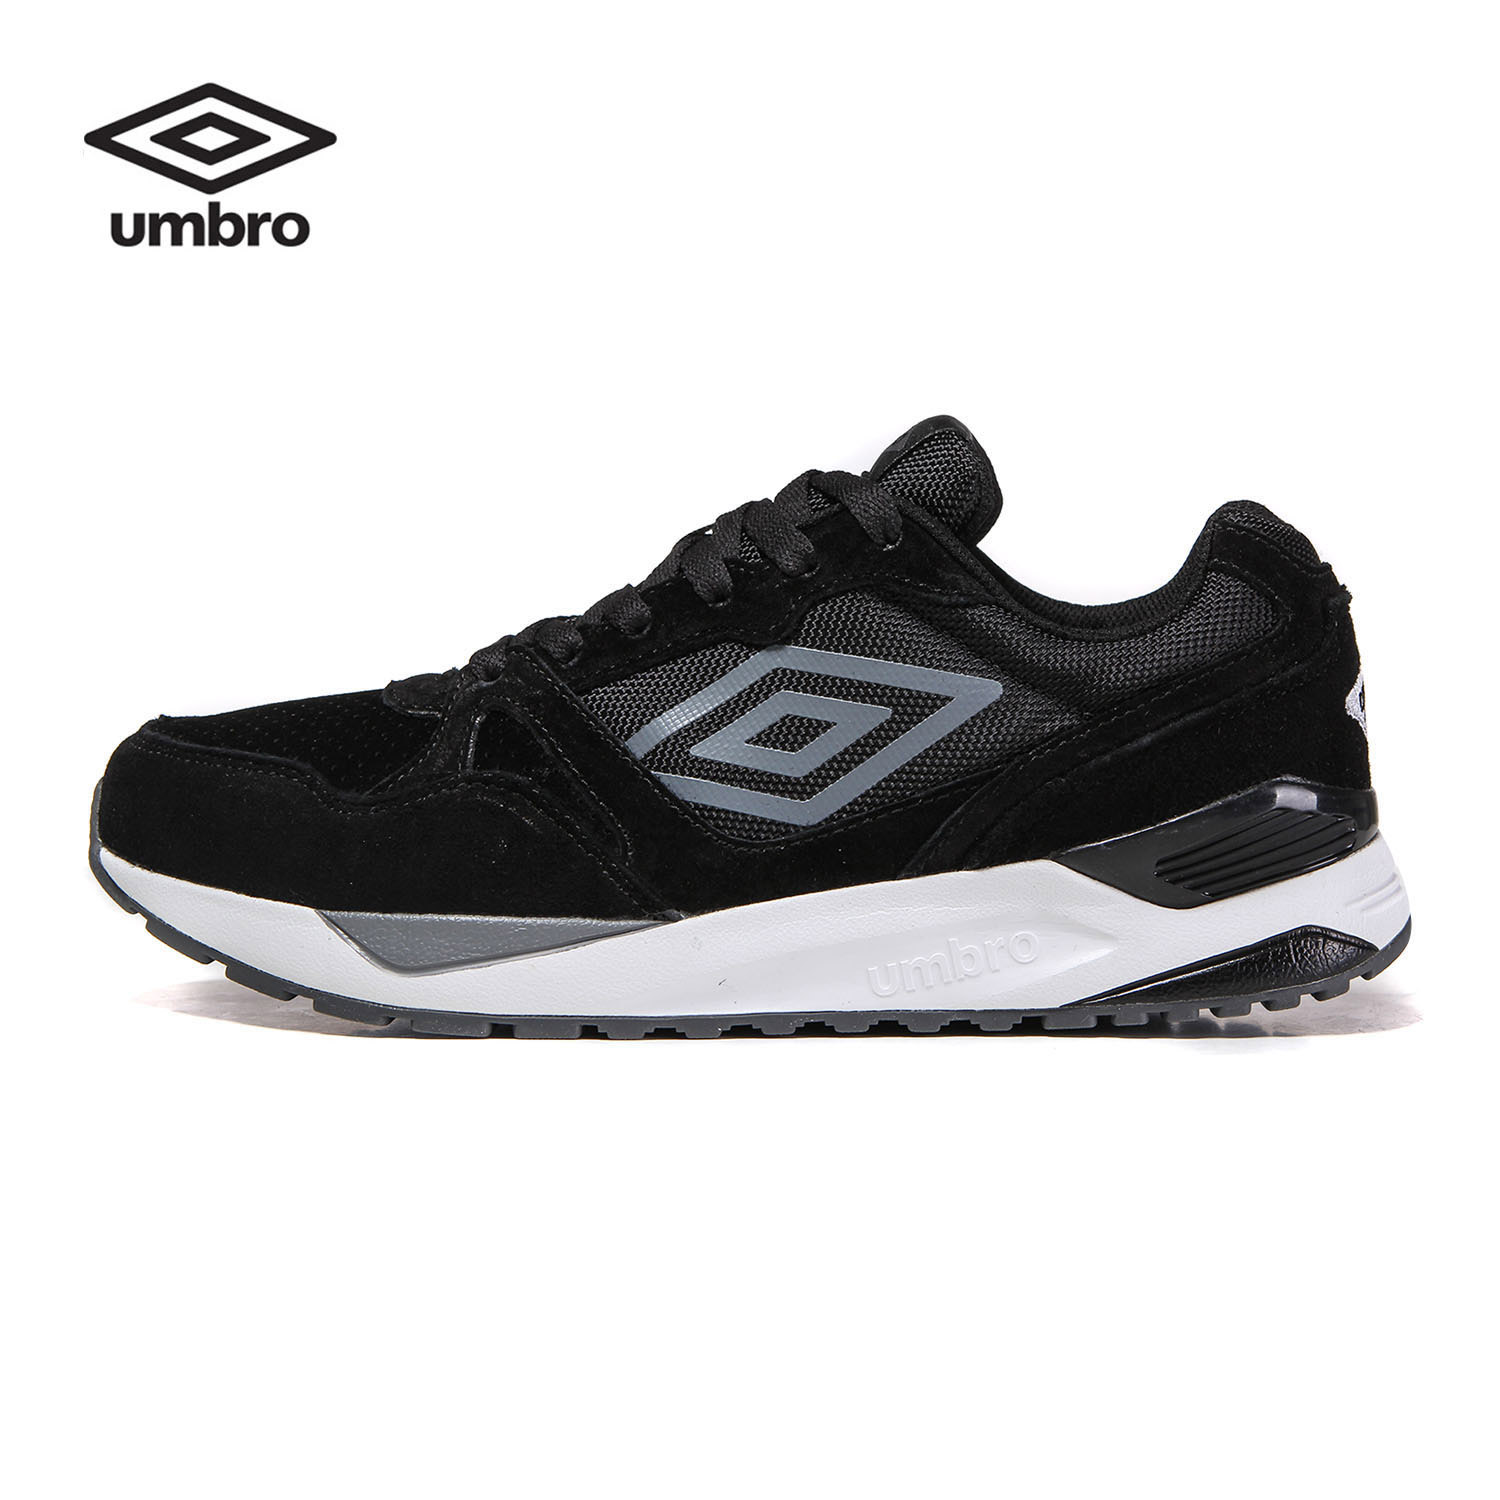 Umbro 2016 Men Running Shoes Lace-up Breathable Light Weight Cushioning Jogging  Running Shoes Sneakers